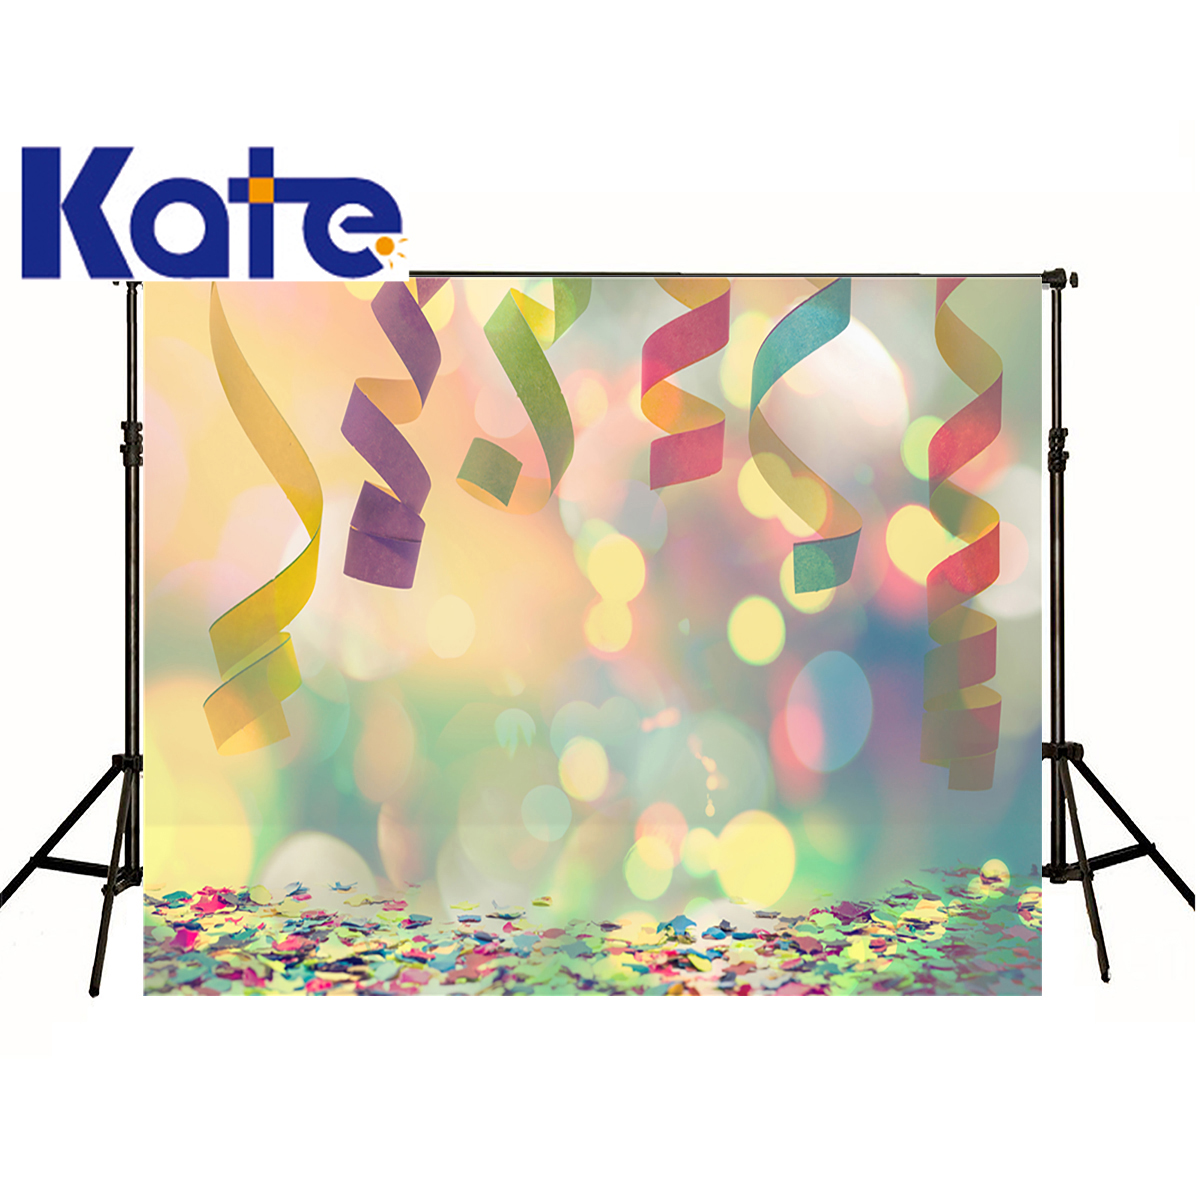 Kate Photographic Background Ribbons Colored Dots Glow Paper Flowers Washable Birthday Photocall Backdrops Princess Wedding сумка kate spade new york wkru2816 kate spade hanna